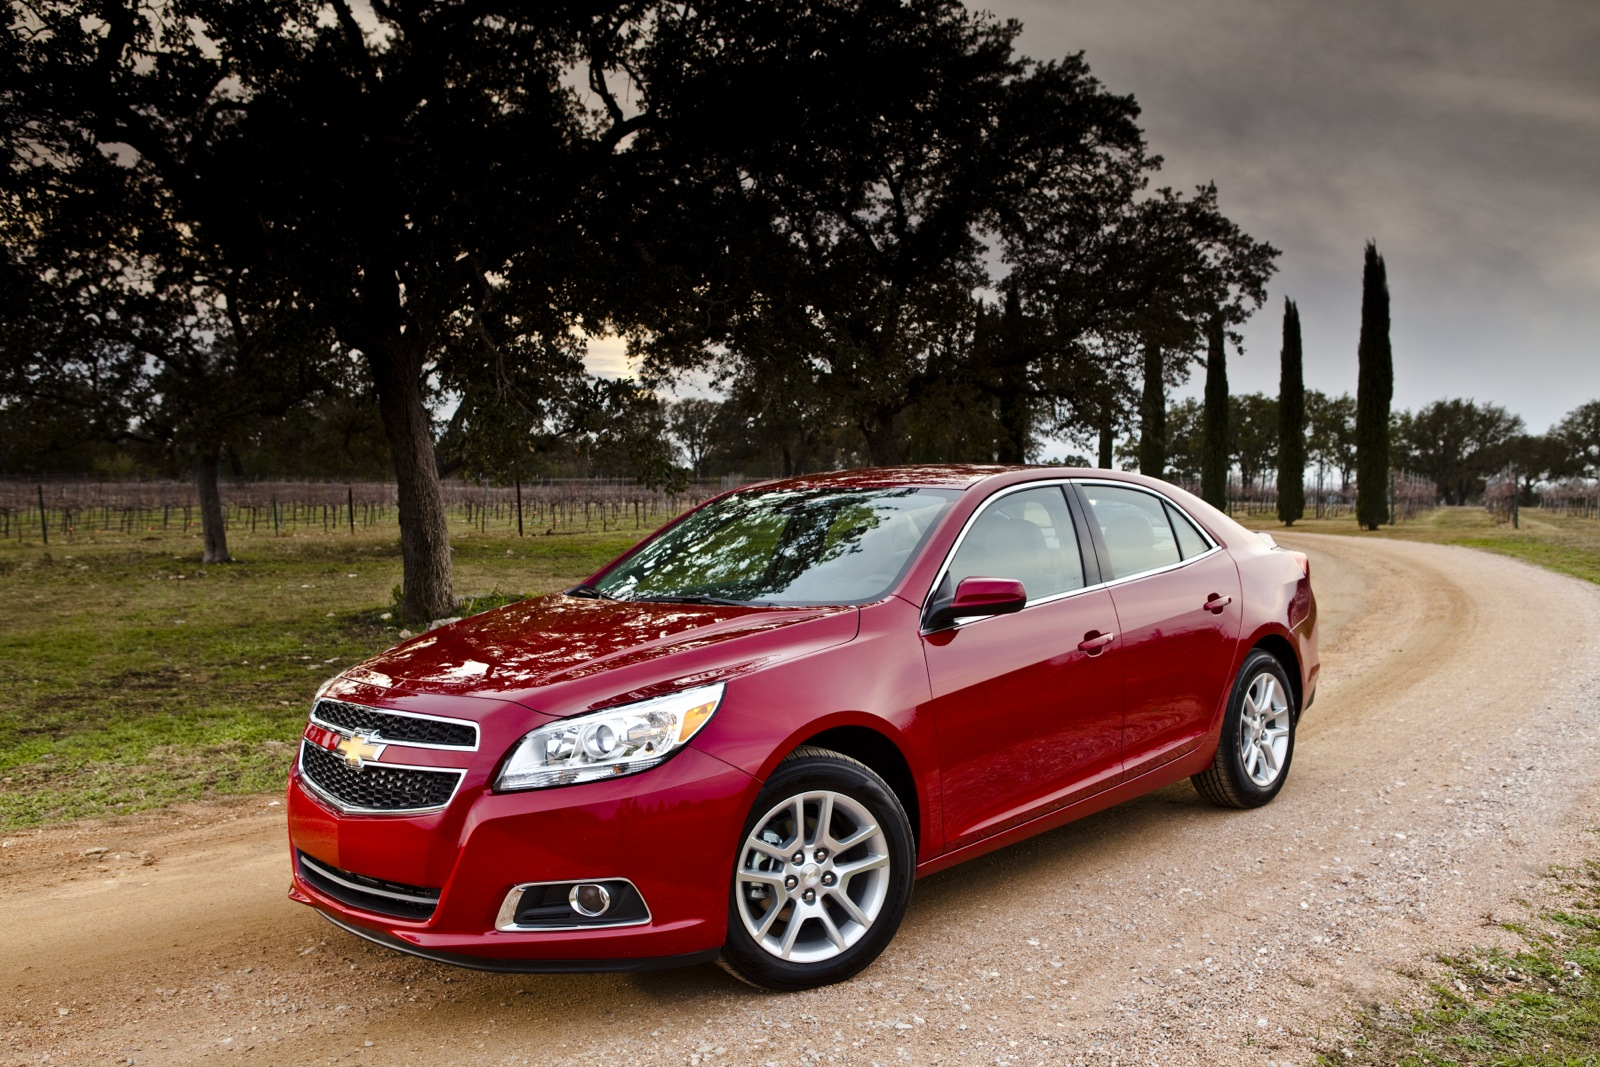 2013 Chevrolet Malibu Chevy Review Ratings Specs